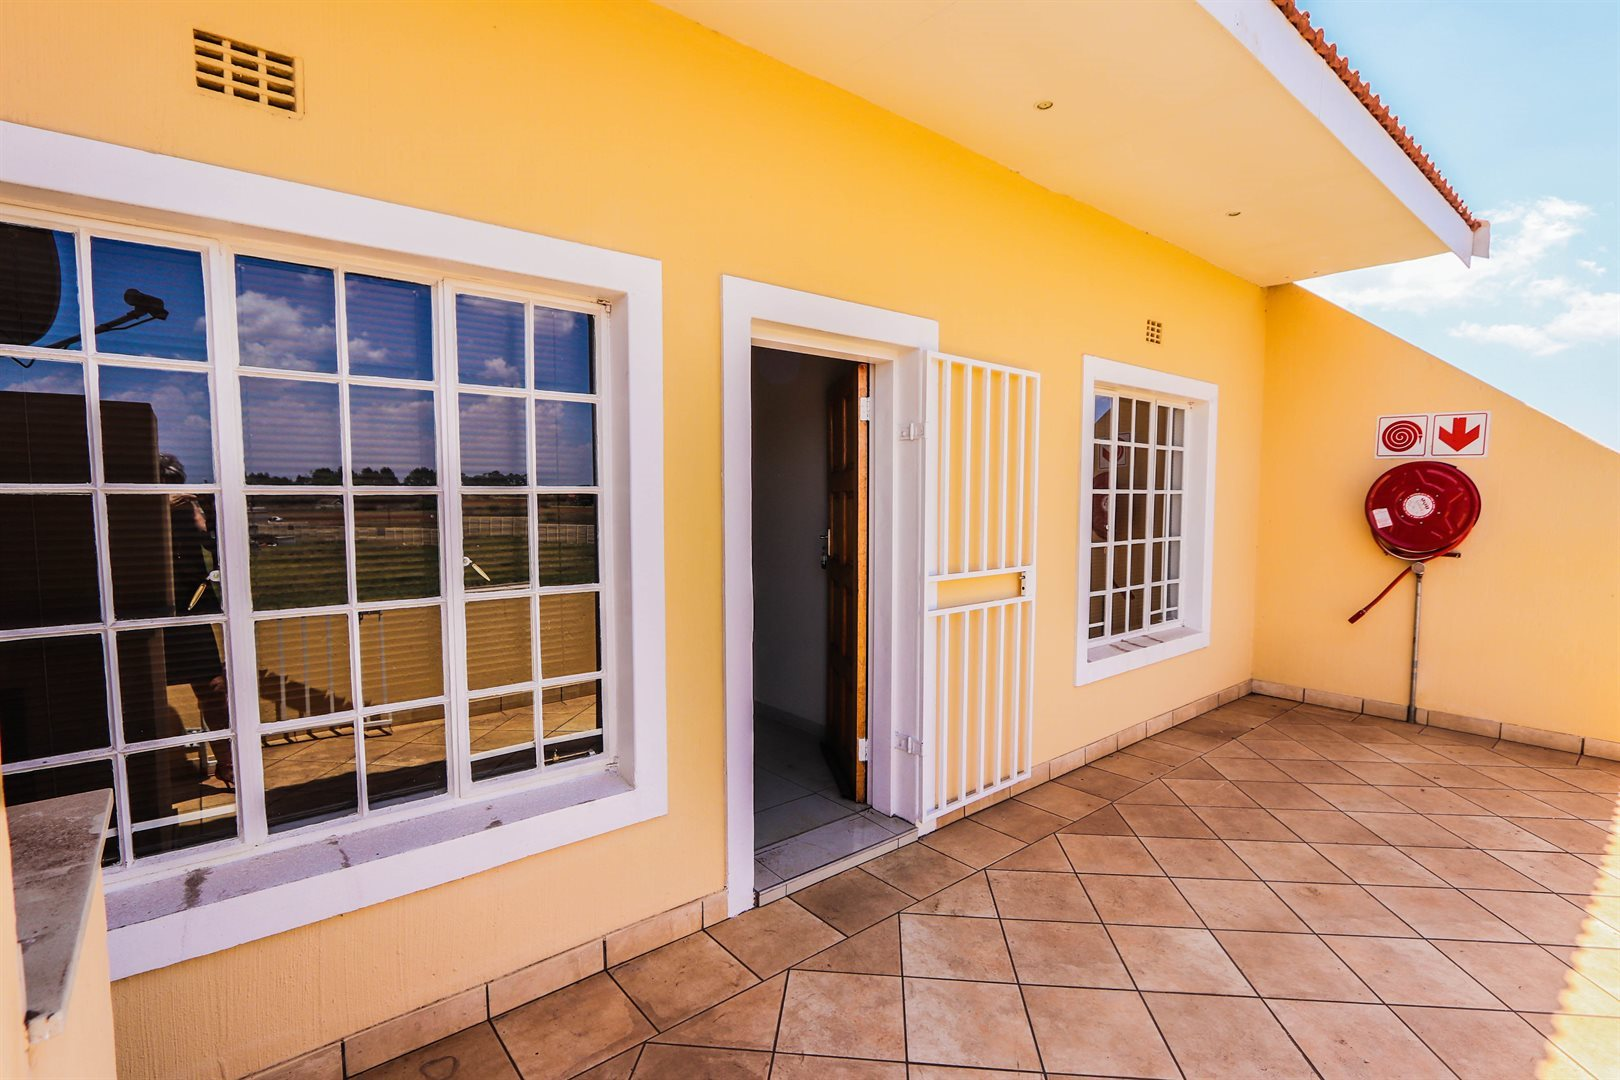 Property and Houses for sale in Gauteng - Page 1761, Townhouse, 2 Bedrooms - ZAR 482,000